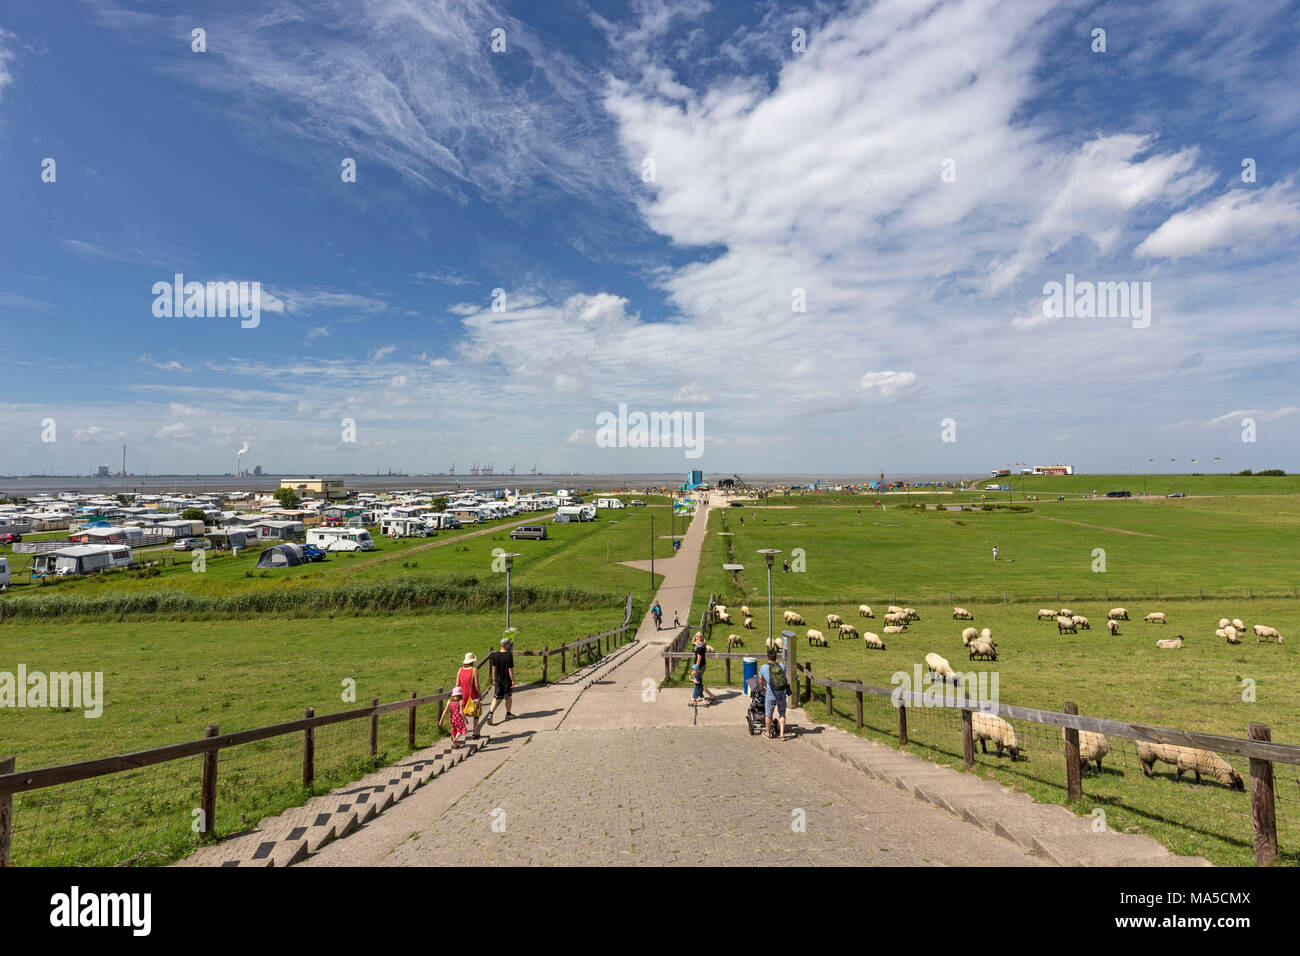 View from the dyke transition to Friesenstrand, Tossens, district of the Butjadingen municipality, administrativ district Wesermarsch, - Stock Image